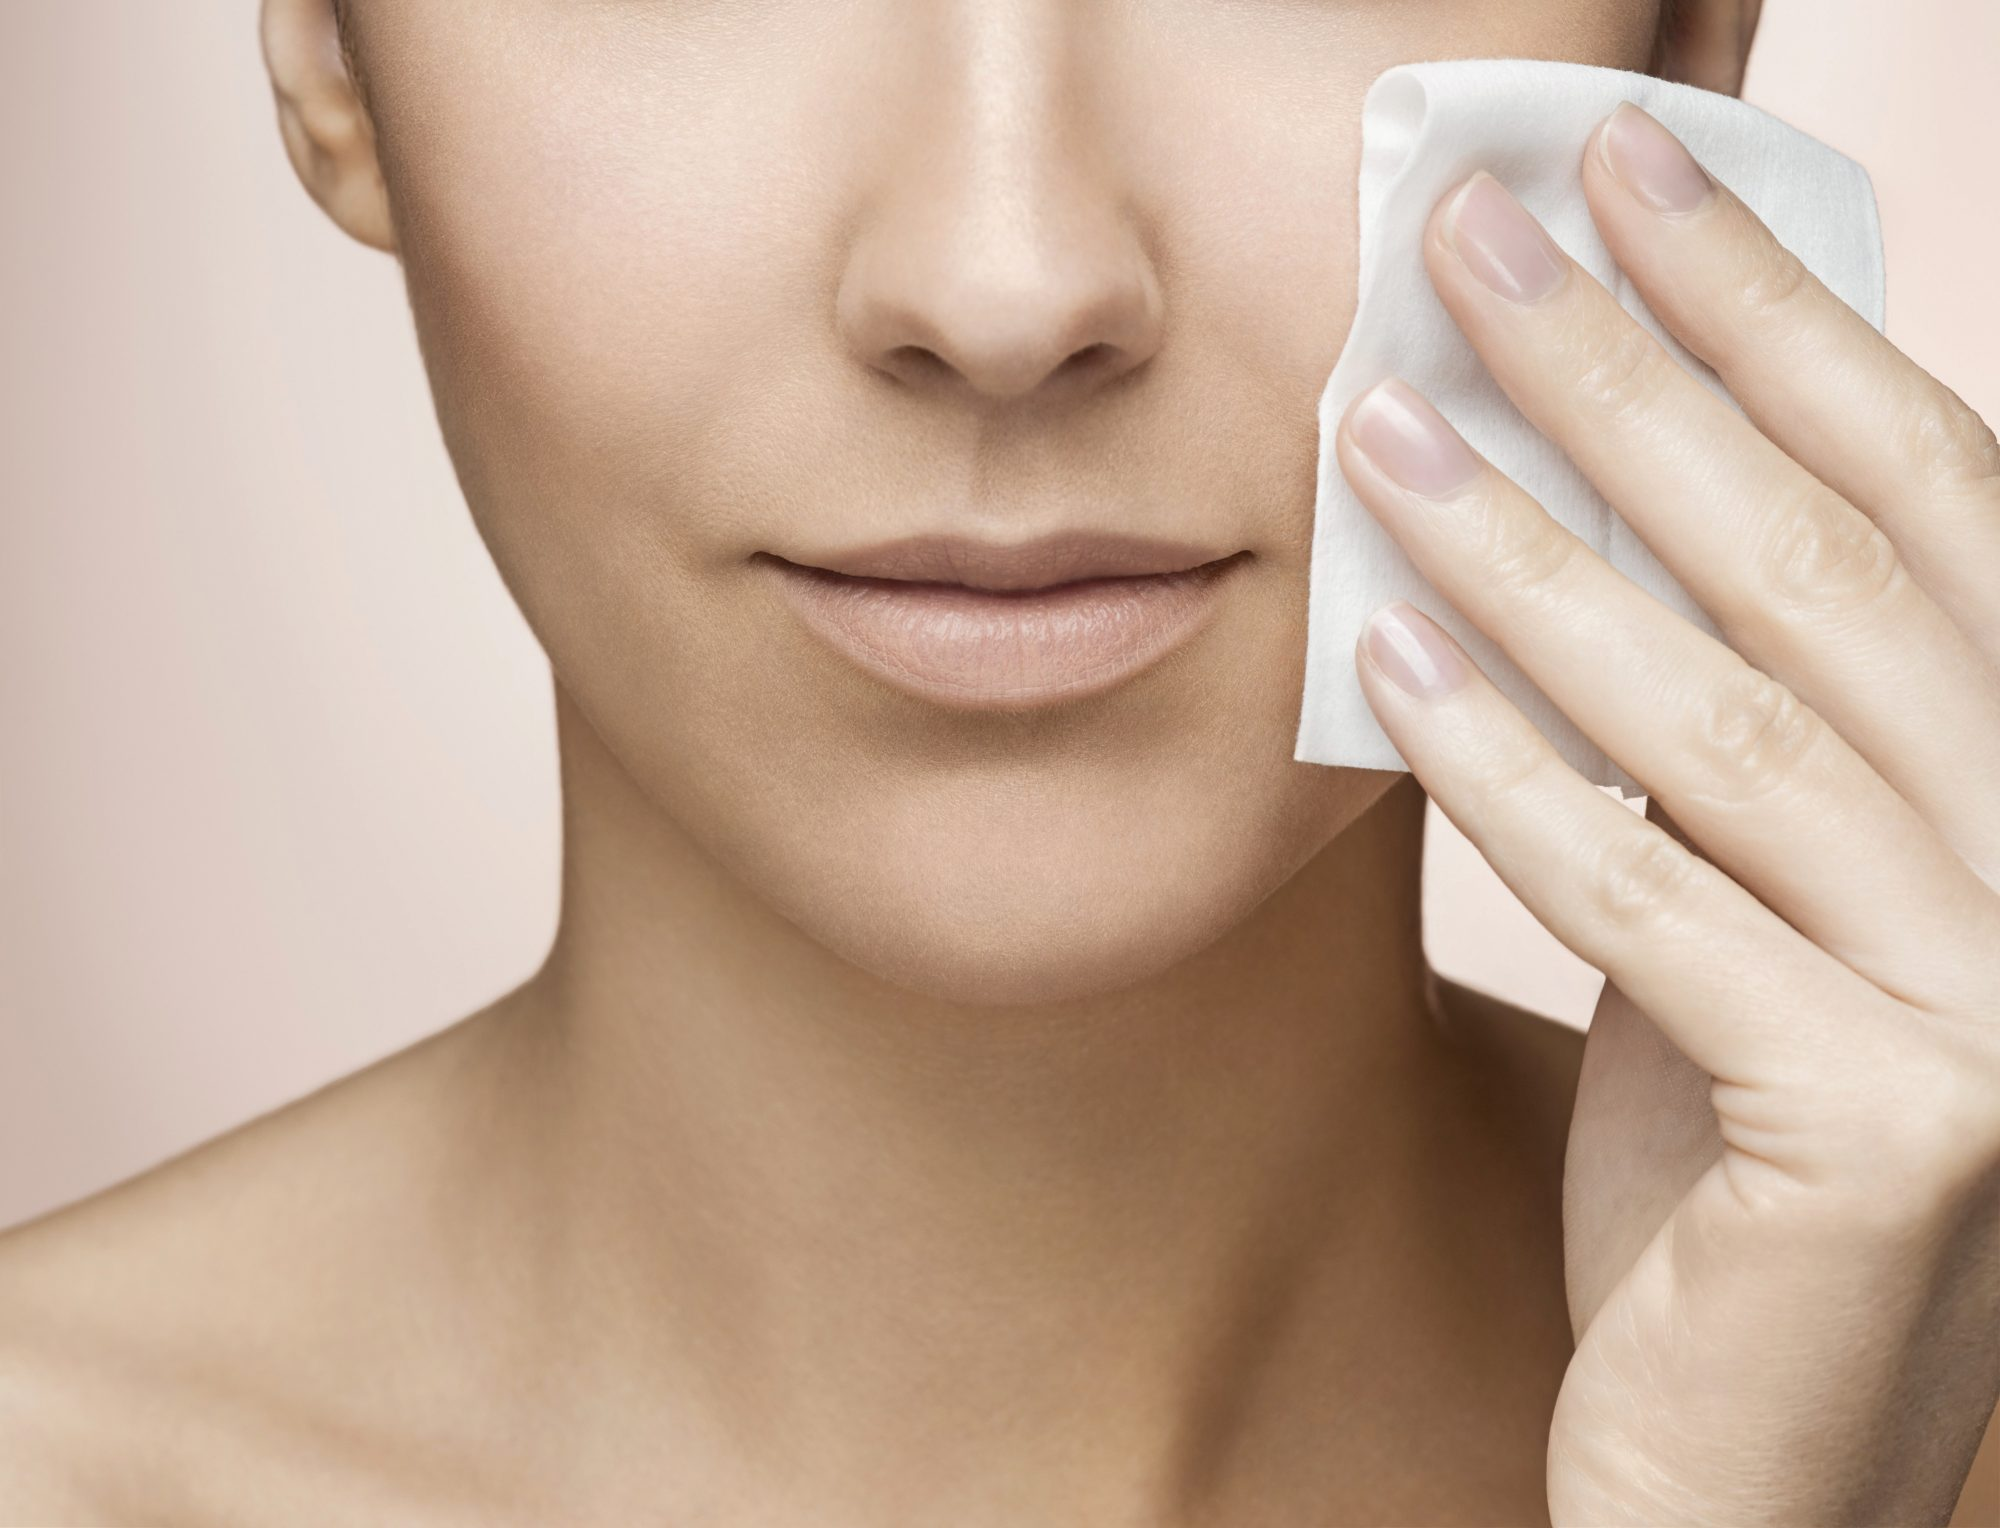 Young woman wiping face with tissue